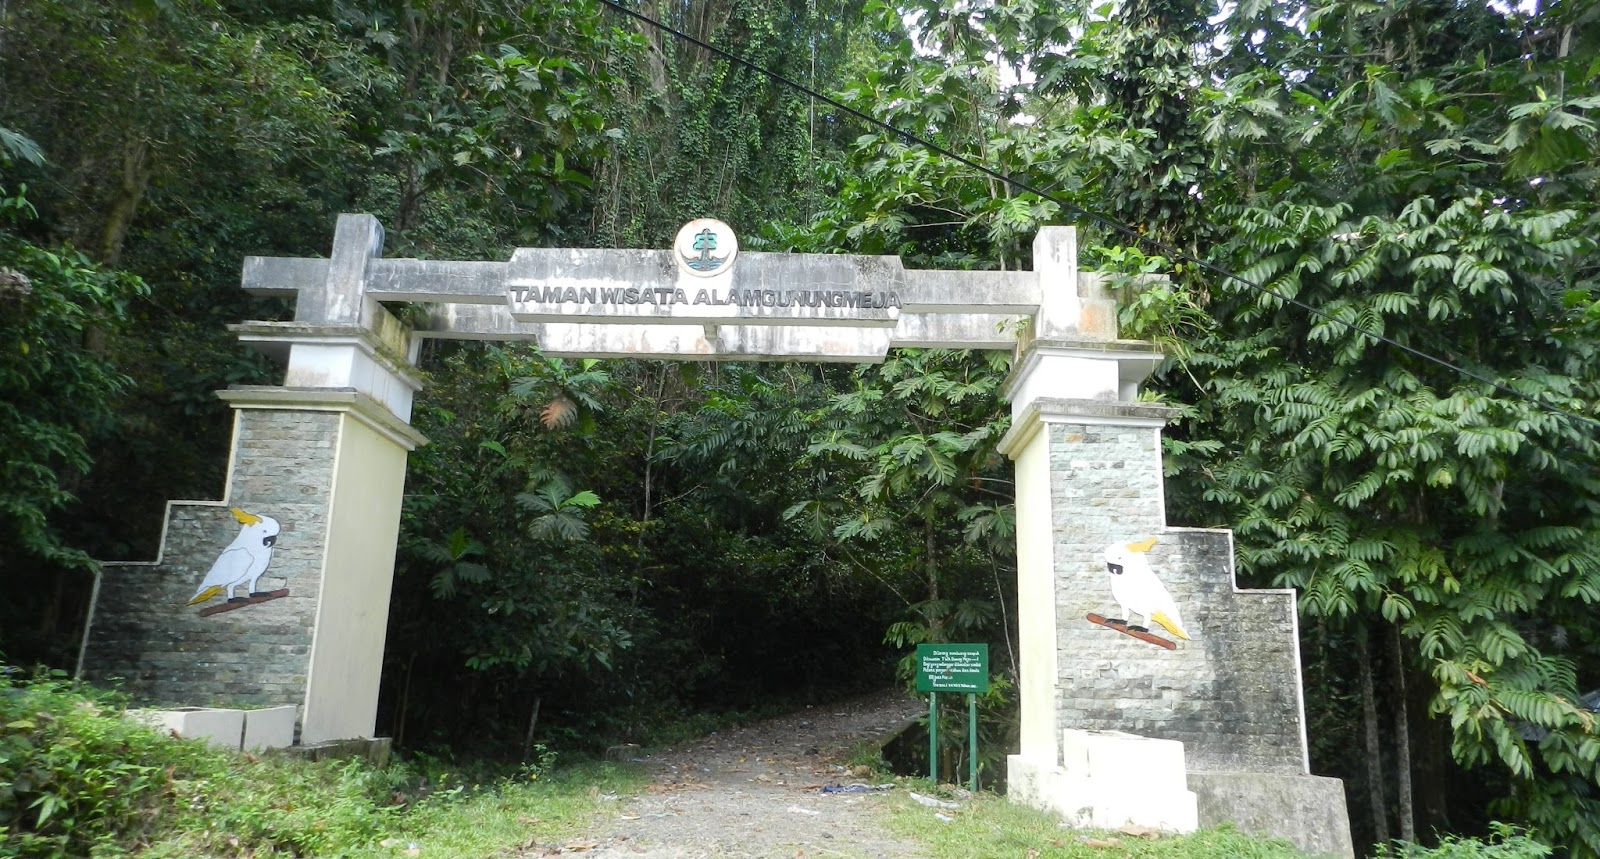 Gunung Meja Forgotten Forests Park City Manokwari Managed Facilities Broken